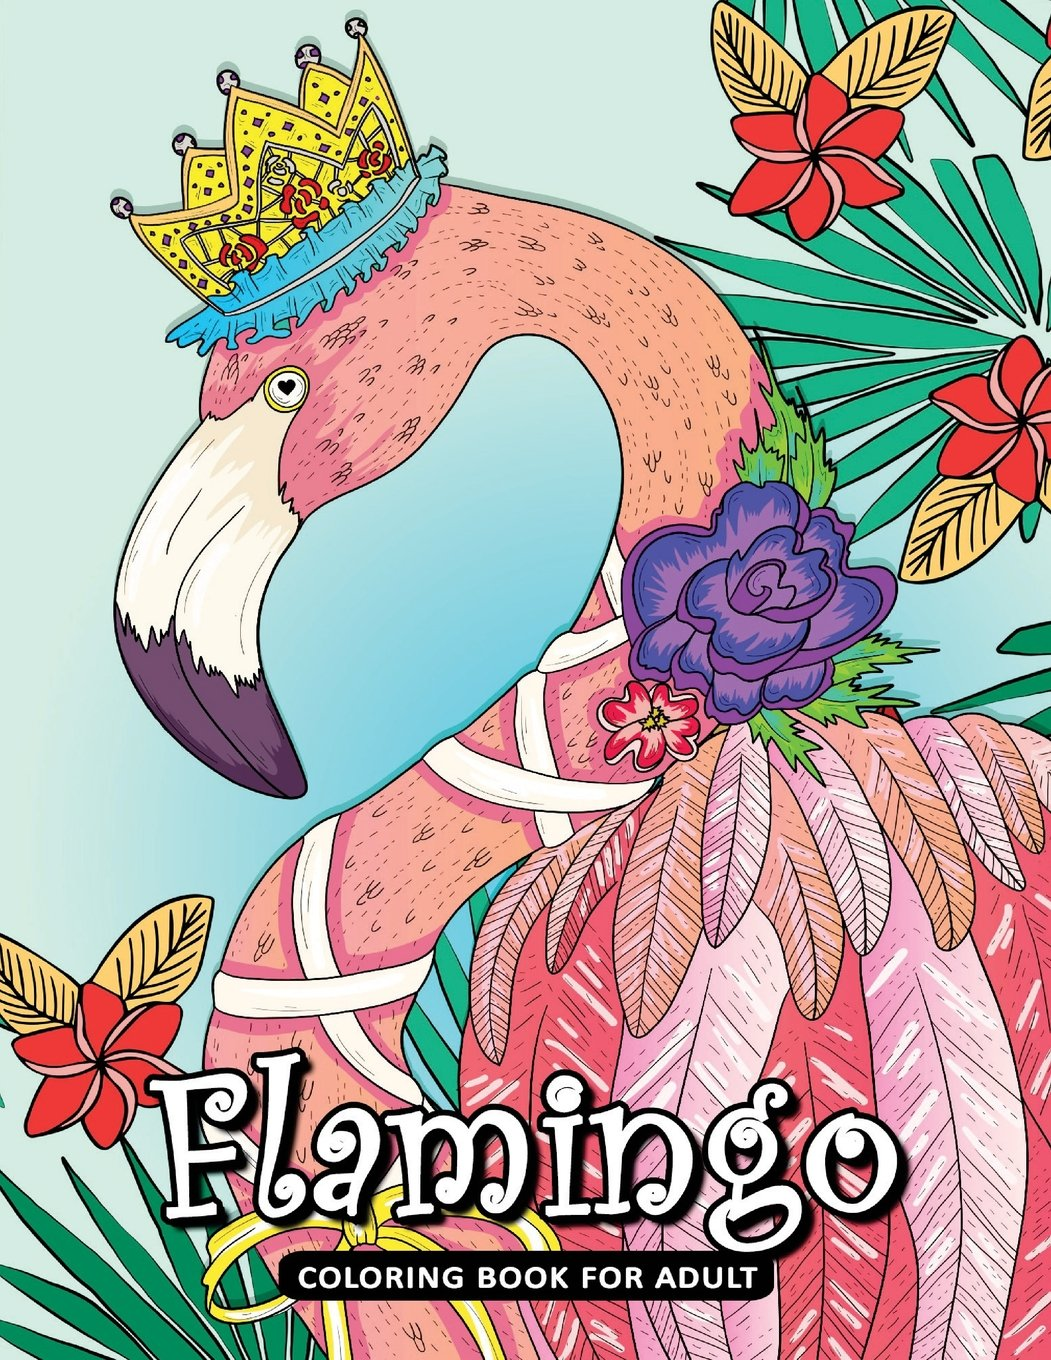 Flamingo Coloring Book for Adult: A Beautiful Bird Coloring Book Easy, Fun, Beautiful Coloring Pages